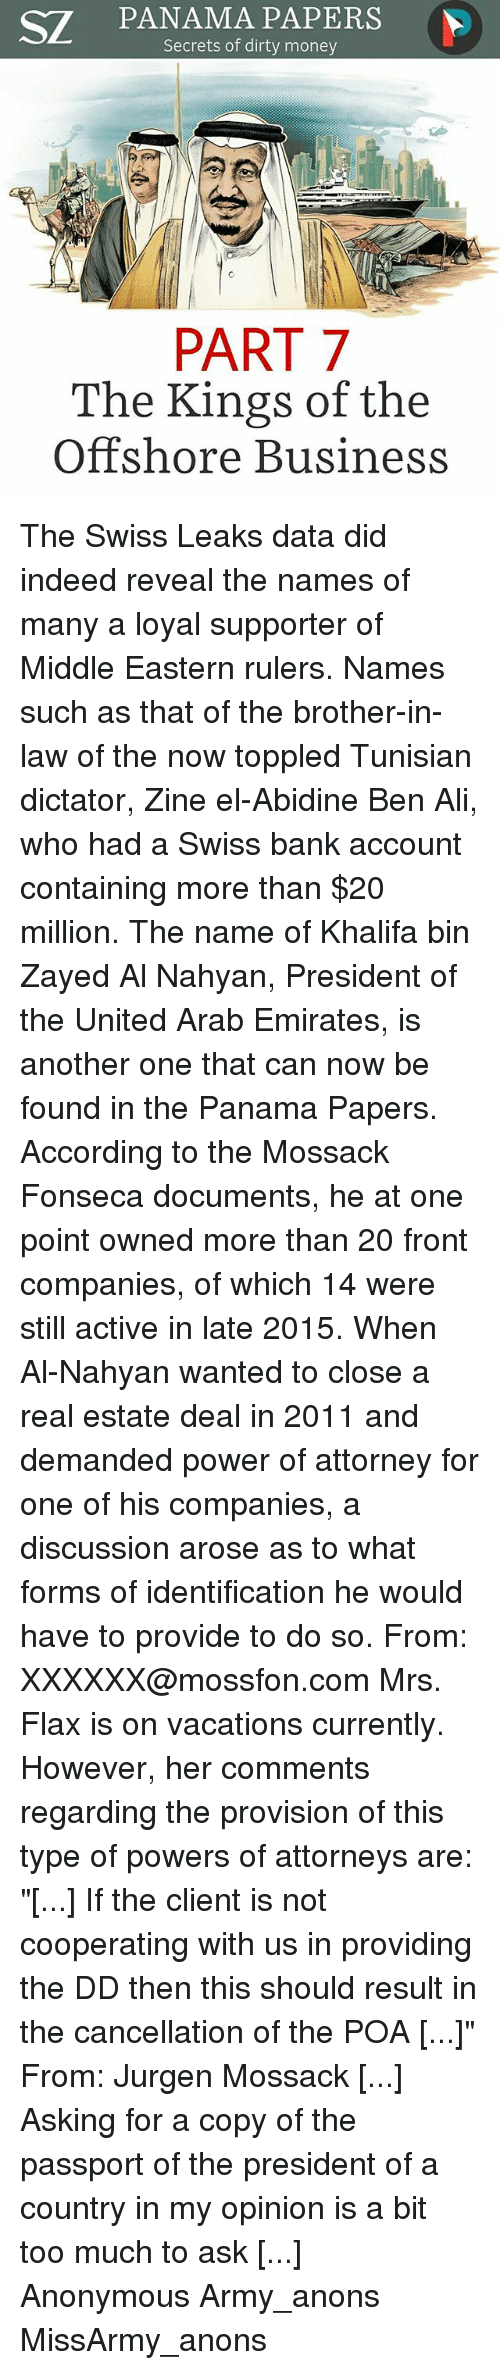 Wjc llc panama papers